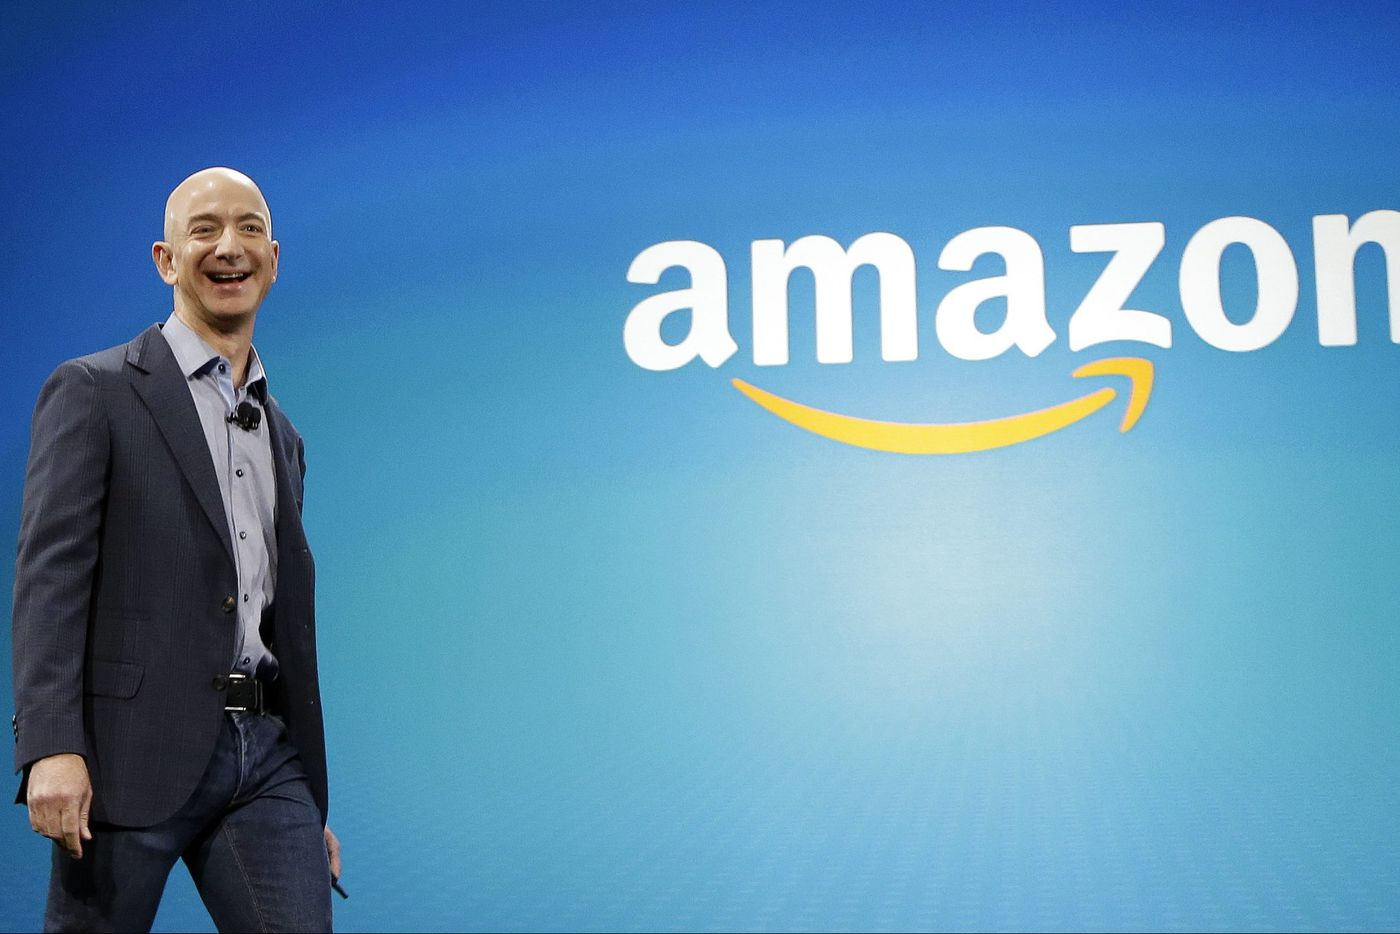 Jeff Bezos launches $2-billion fund to help homeless families, build preschools